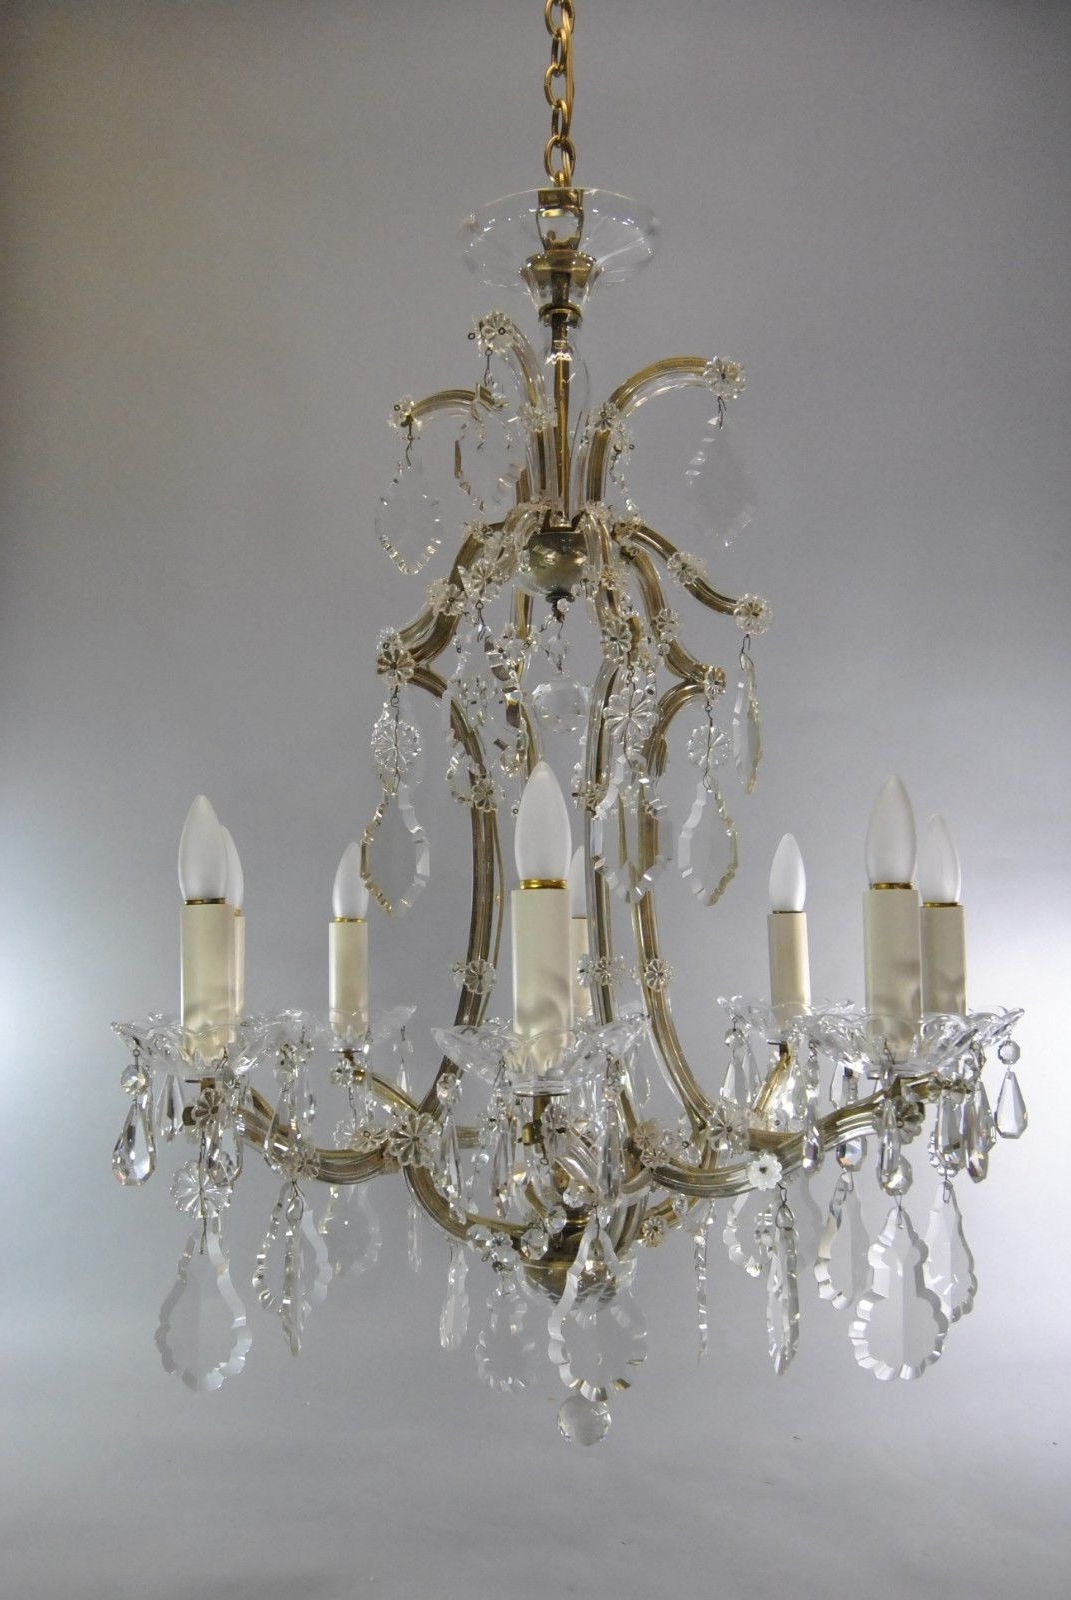 Leffler's Antiques In Widely Used French Glass Chandelier (View 3 of 15)